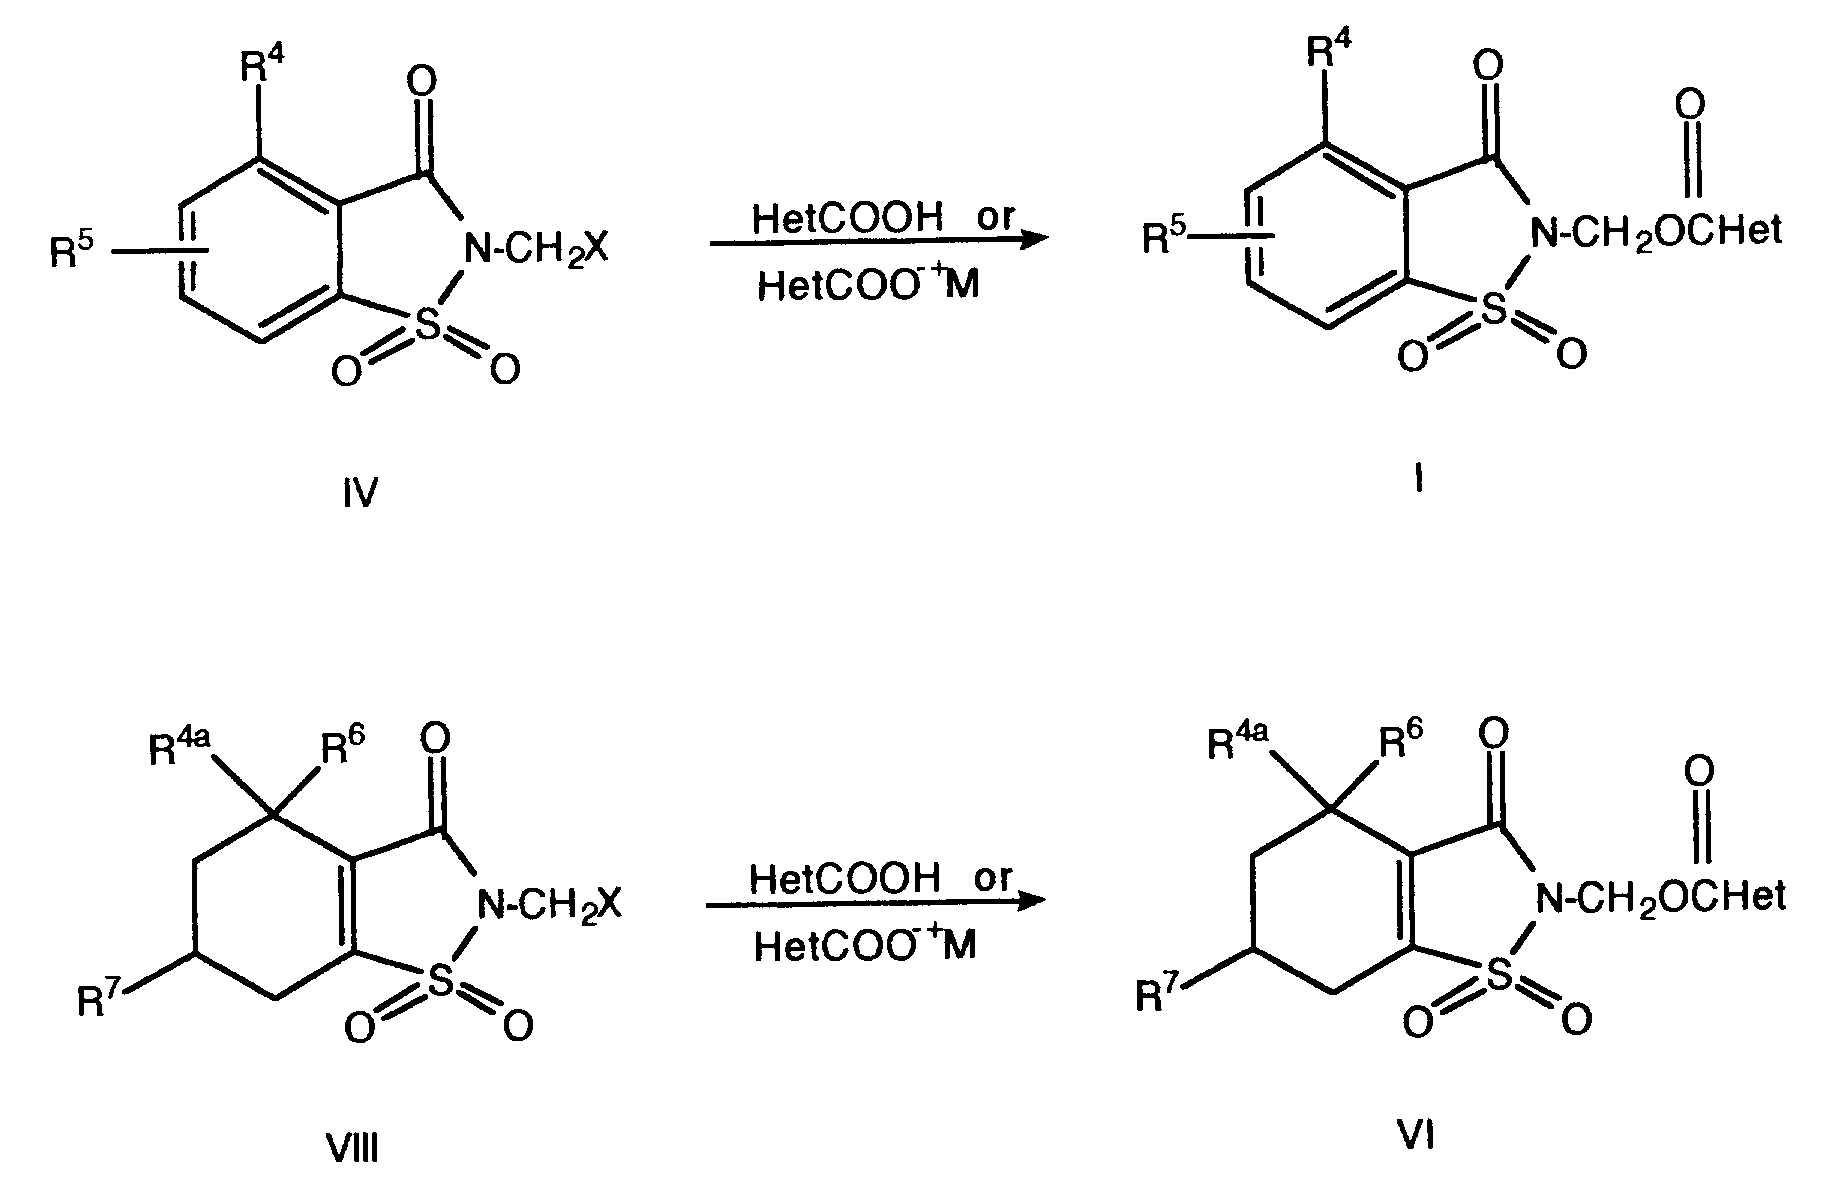 rxn of iodoethane with sodium saccharin (1 ) draw complete reaction schemes and mechanisms for the two reactions of  sodium saccharin o-ethyl saccharine and n-ethyl saccharine with  iodoethane and (2) predict the approximate chemical shift of the proton  resonance.